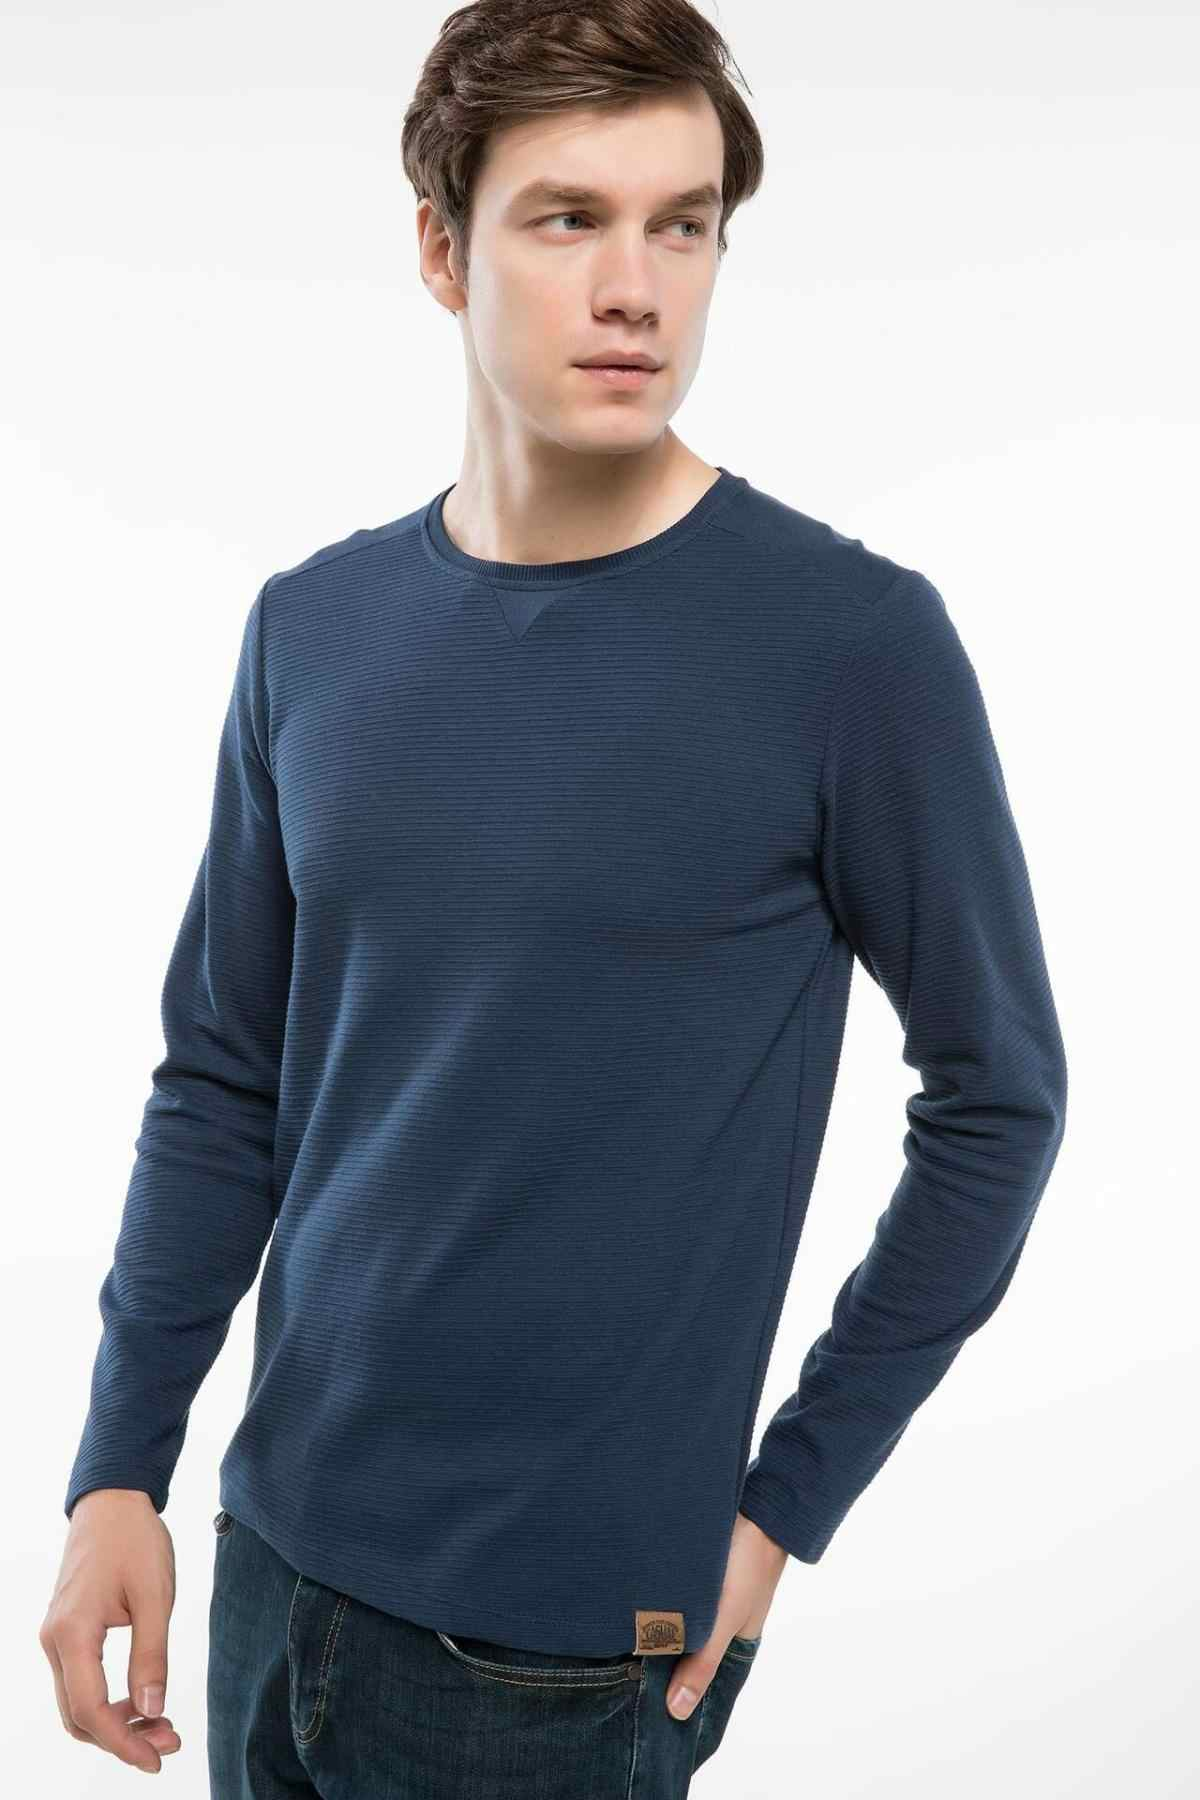 DeFacto Men Basic Cotton Knitted Sweatshirt White Black All Match Long Sleeve Casual Shirts for Autumn-H3314AZ18AU